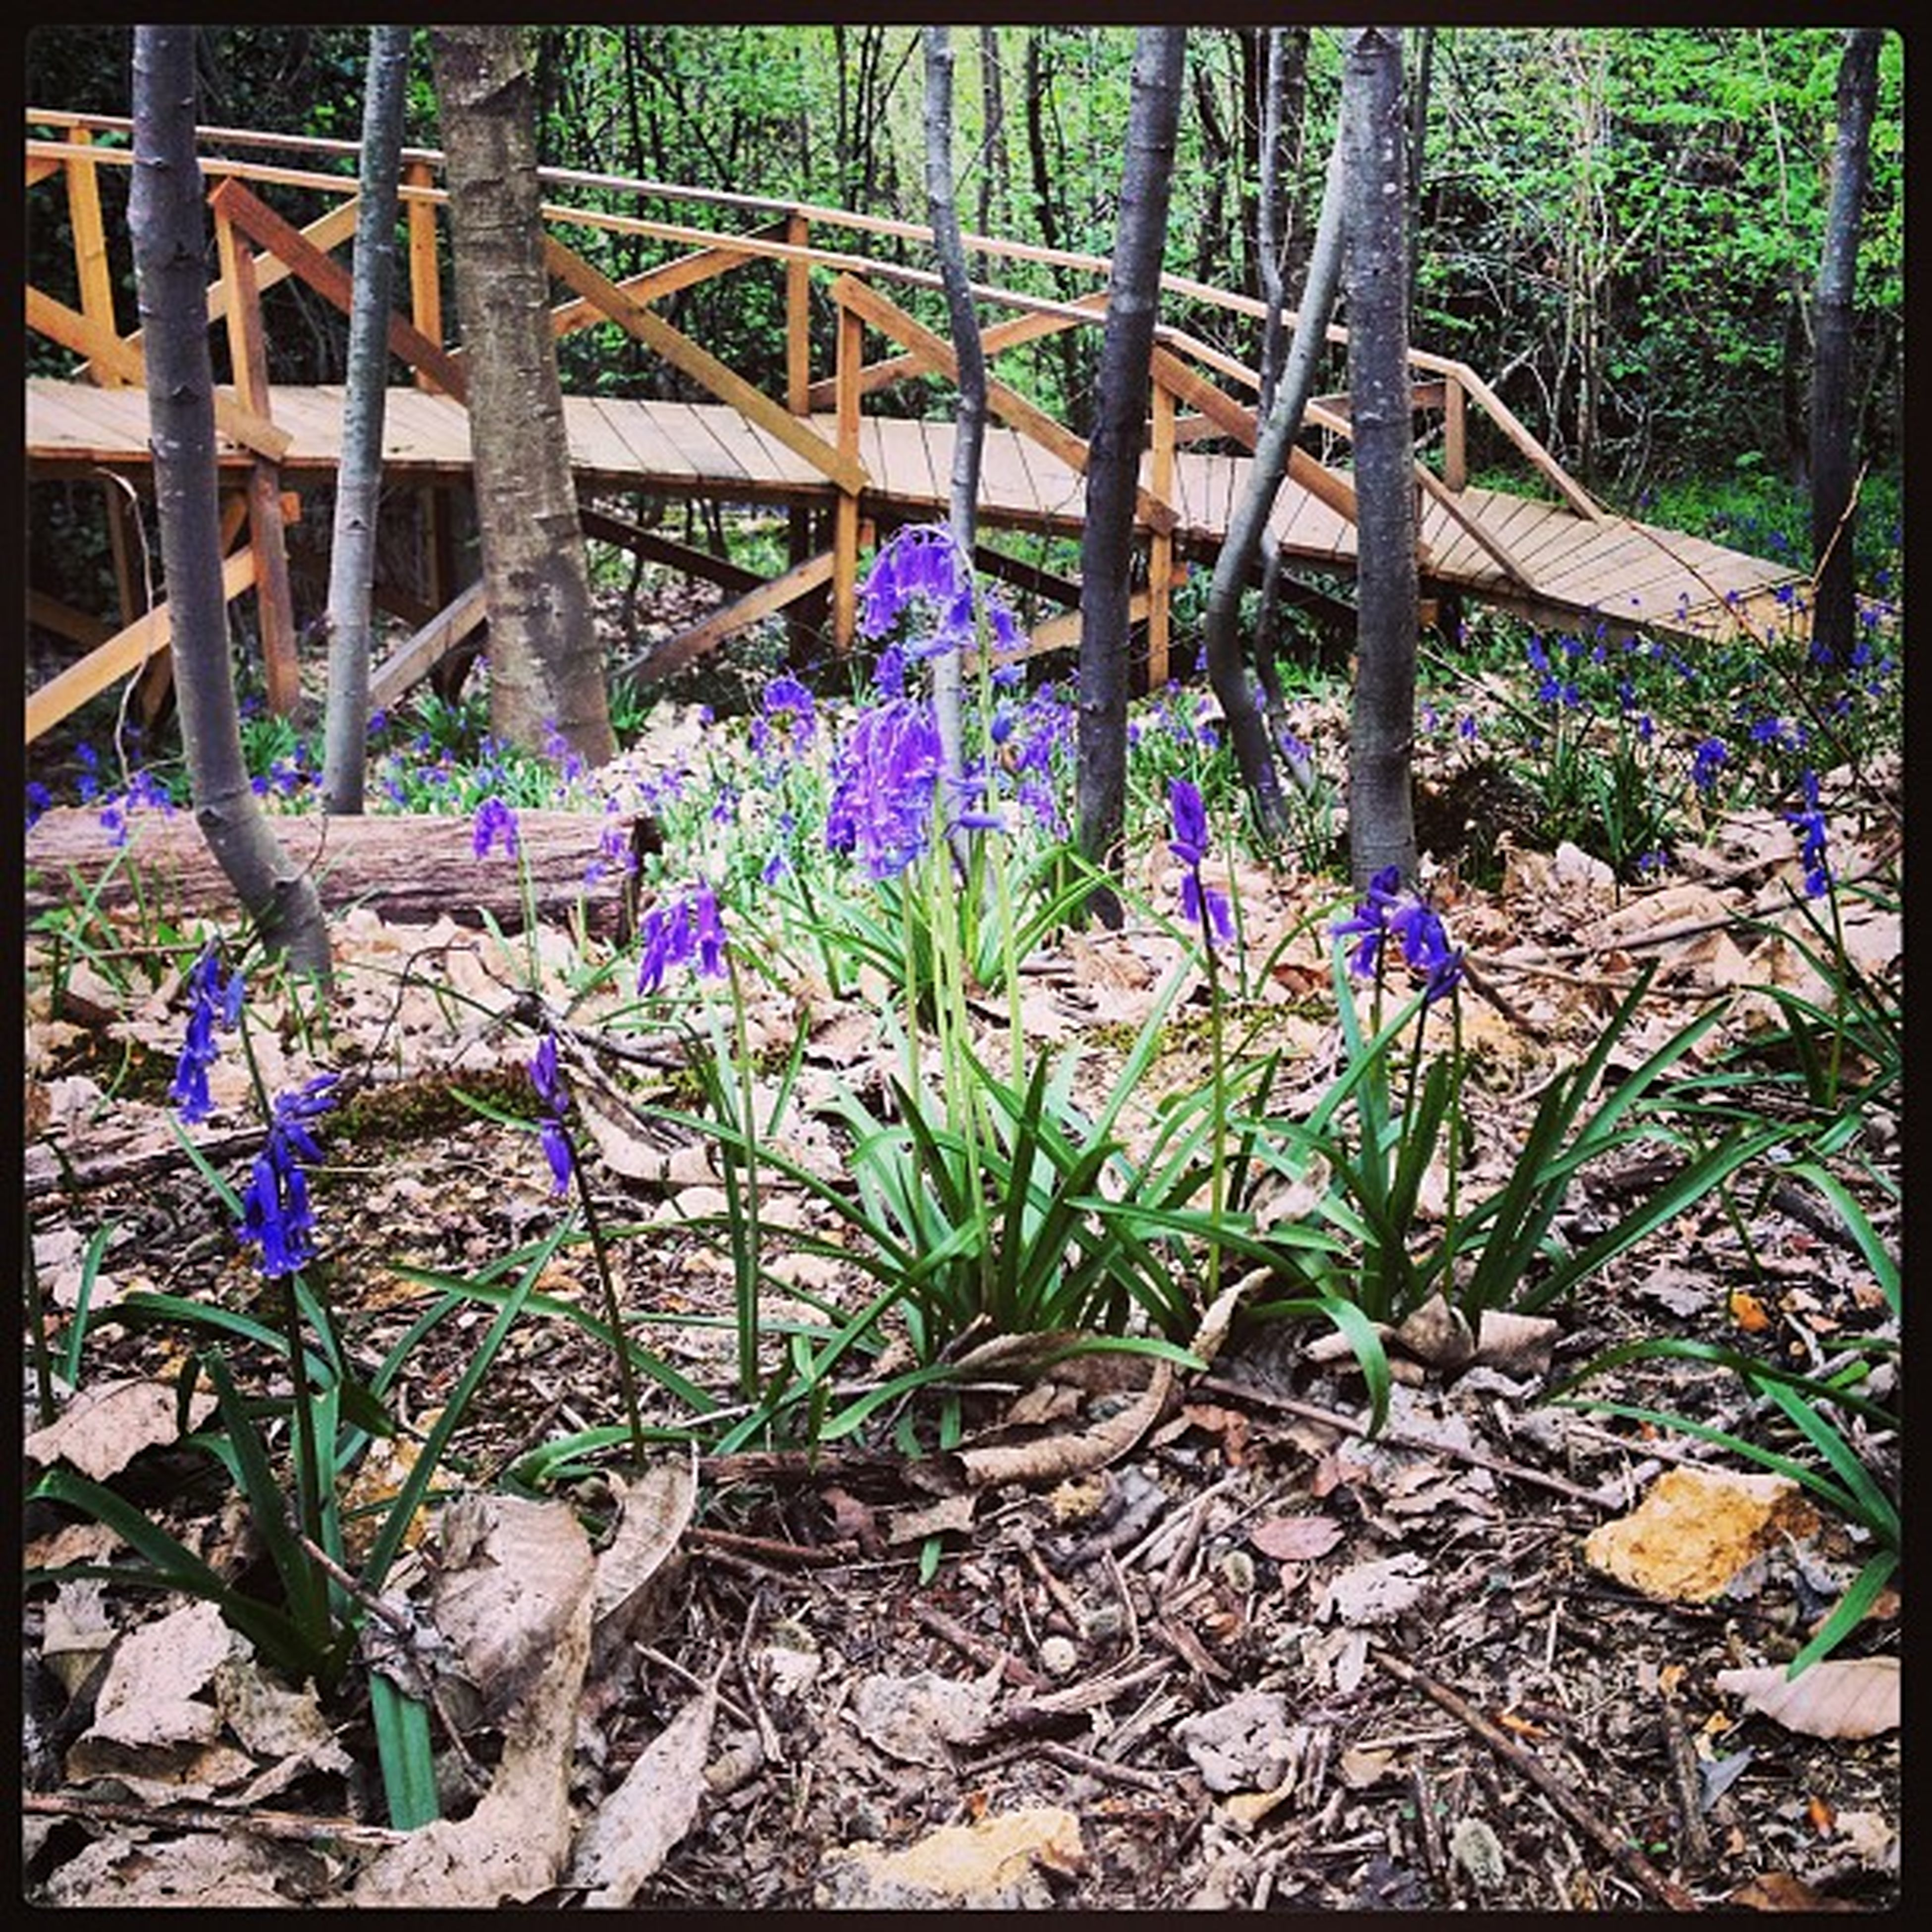 flower, purple, plant, growth, wood - material, fragility, nature, transfer print, auto post production filter, beauty in nature, day, fence, freshness, no people, outdoors, front or back yard, blooming, sunlight, blue, wood